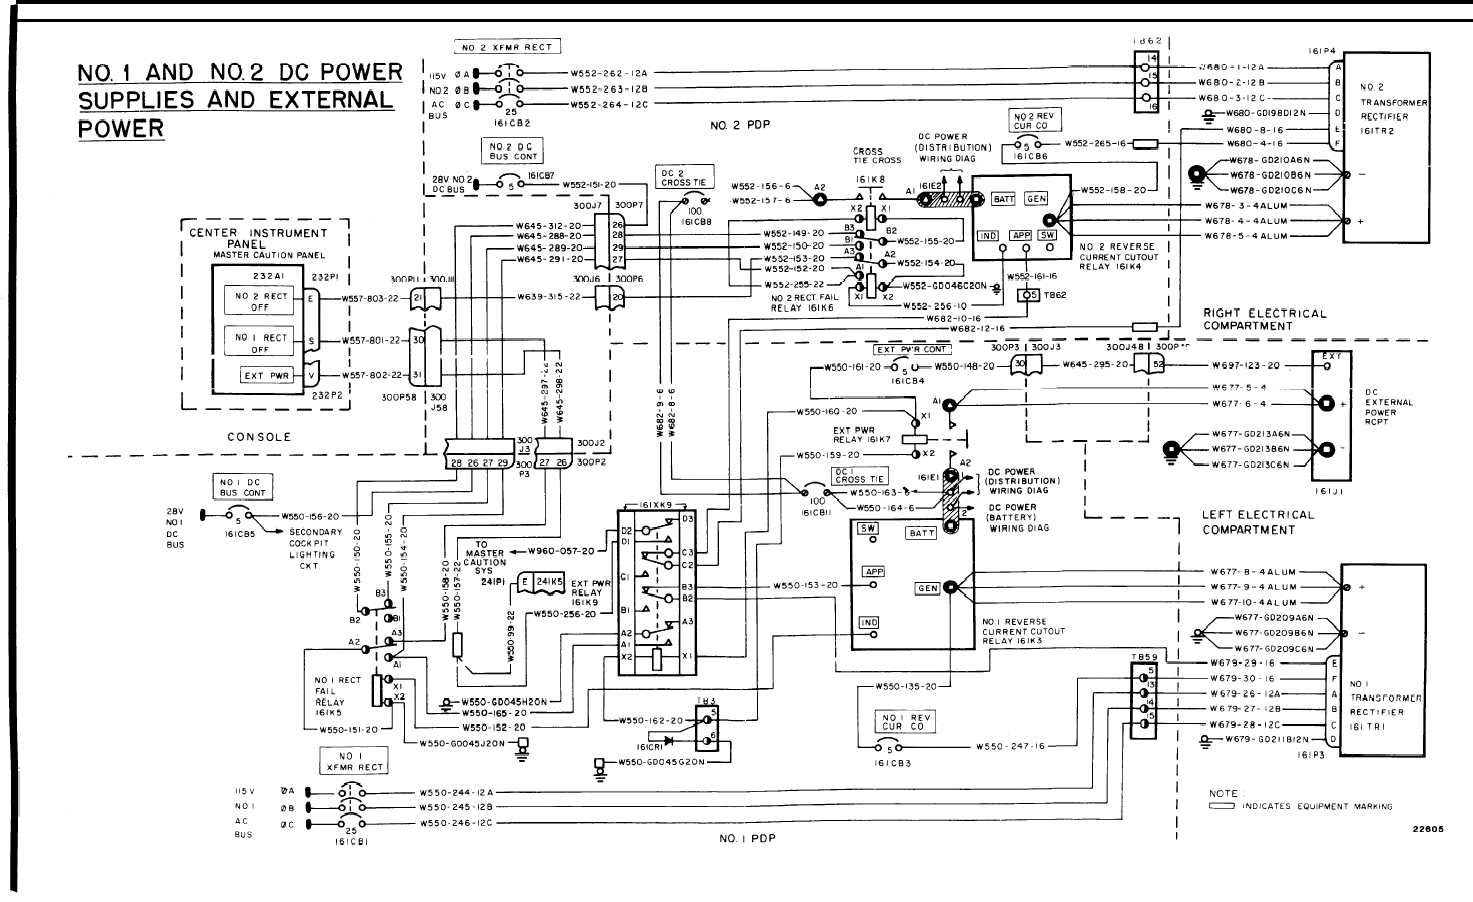 Dc Power System Wiring Diagram Tm 55 1520 240 T 3 968 2 Pdp 16 325 Helicopters With Engine Air Particle Separator Provisions 142 Change